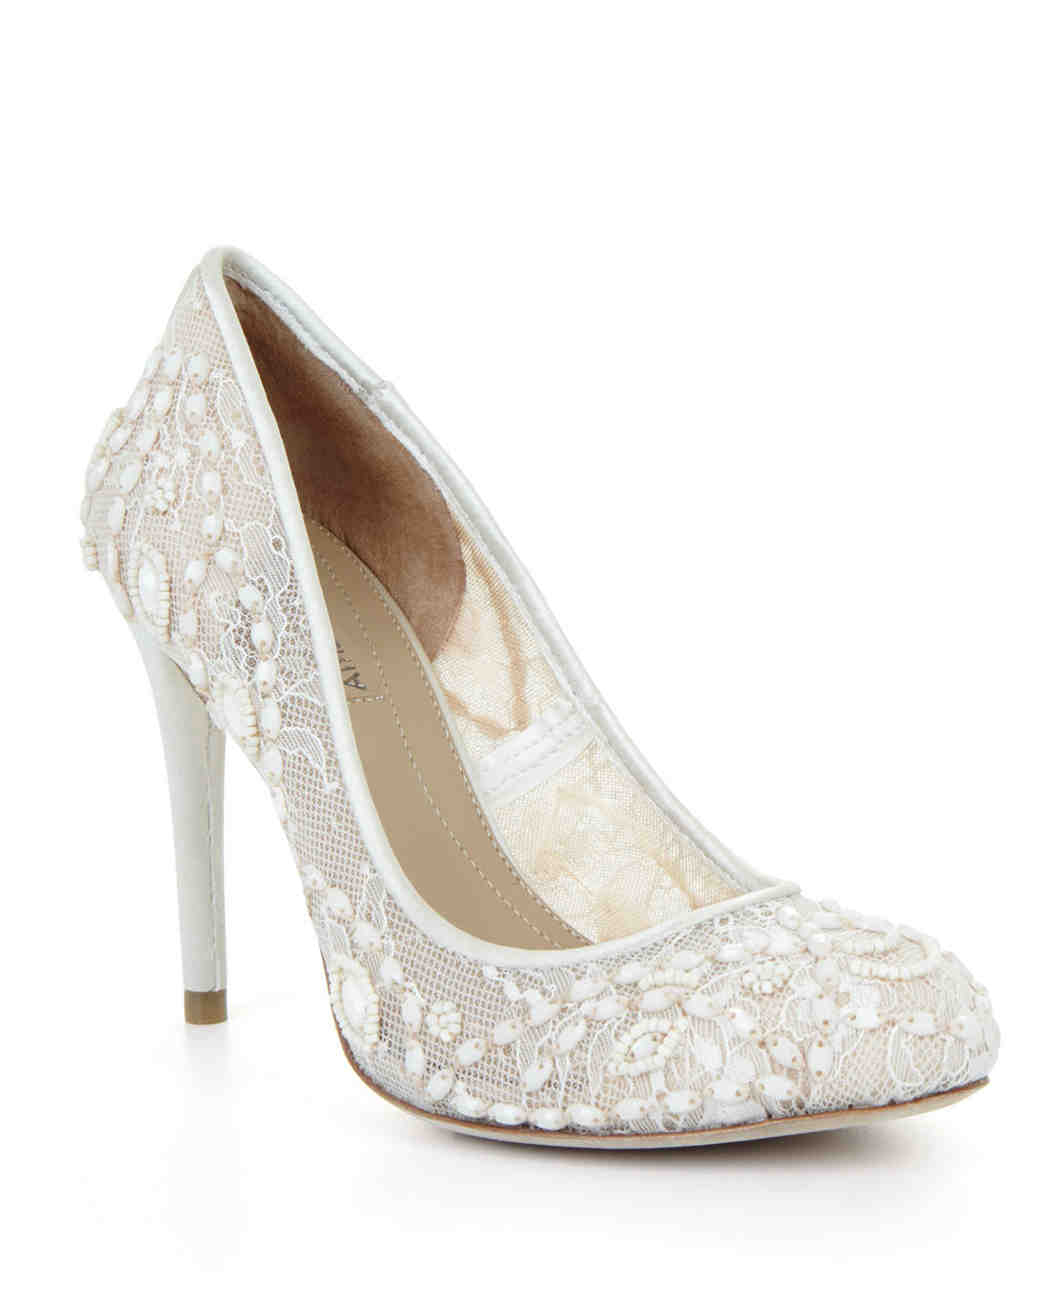 50 Best Shoes for a Bride to Wear to a Summer Wedding ...